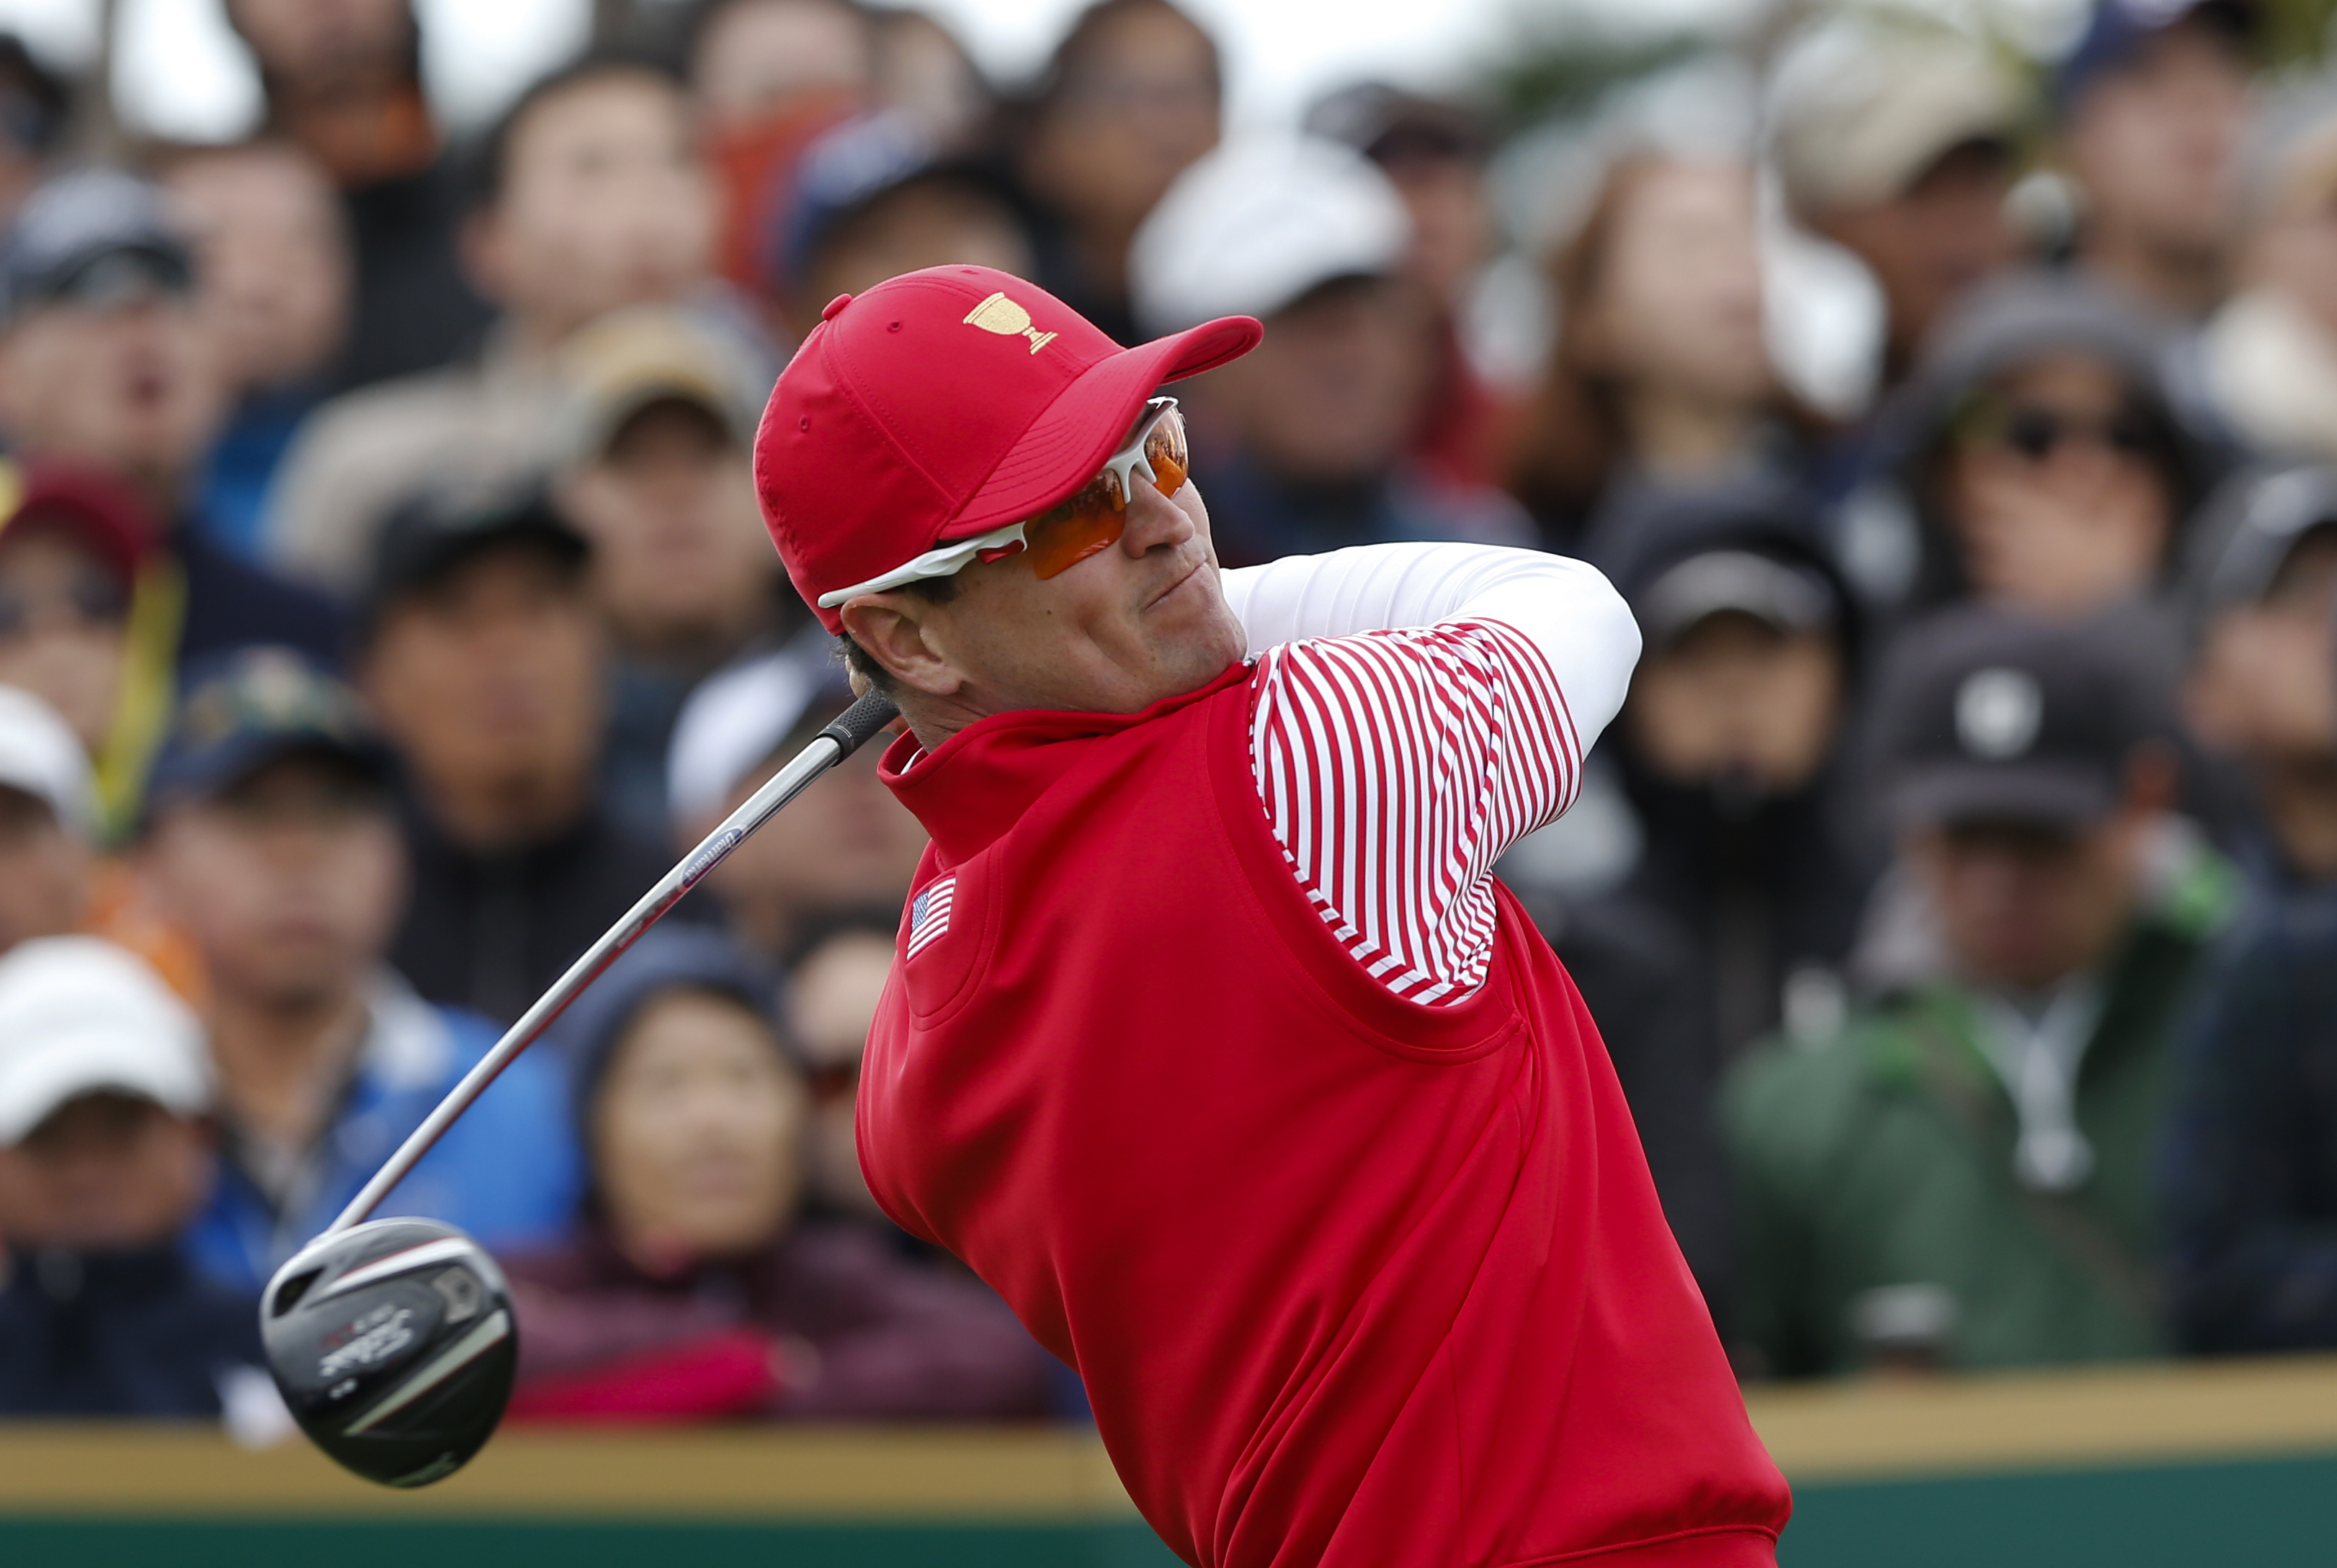 FILE - In this Oct. 11, 2015, file photo, United States' Zach Johnson watches his tee shot on the 12th hole during his singles match against International team player Jason Day of Australia at the Presidents Cup on the Jack Nicklaus Golf Club Korea, in In